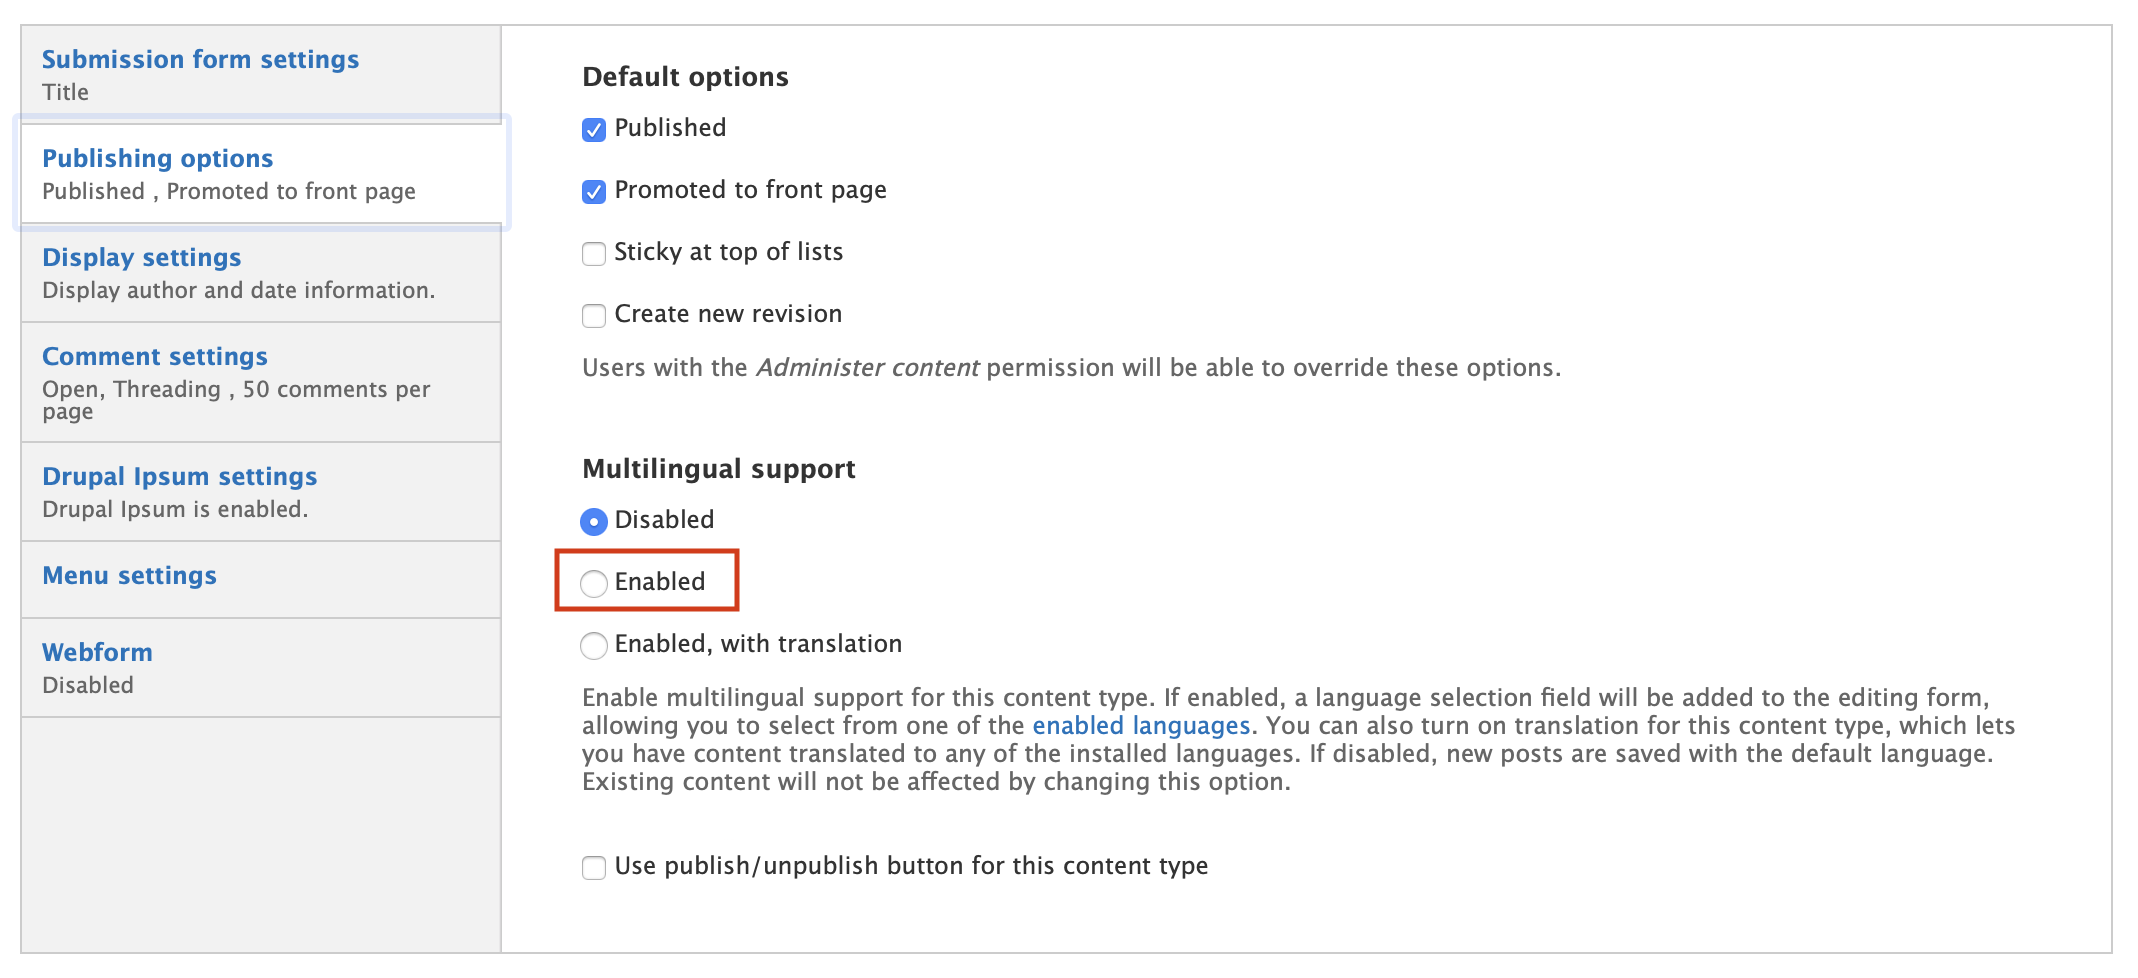 enable multilingual support